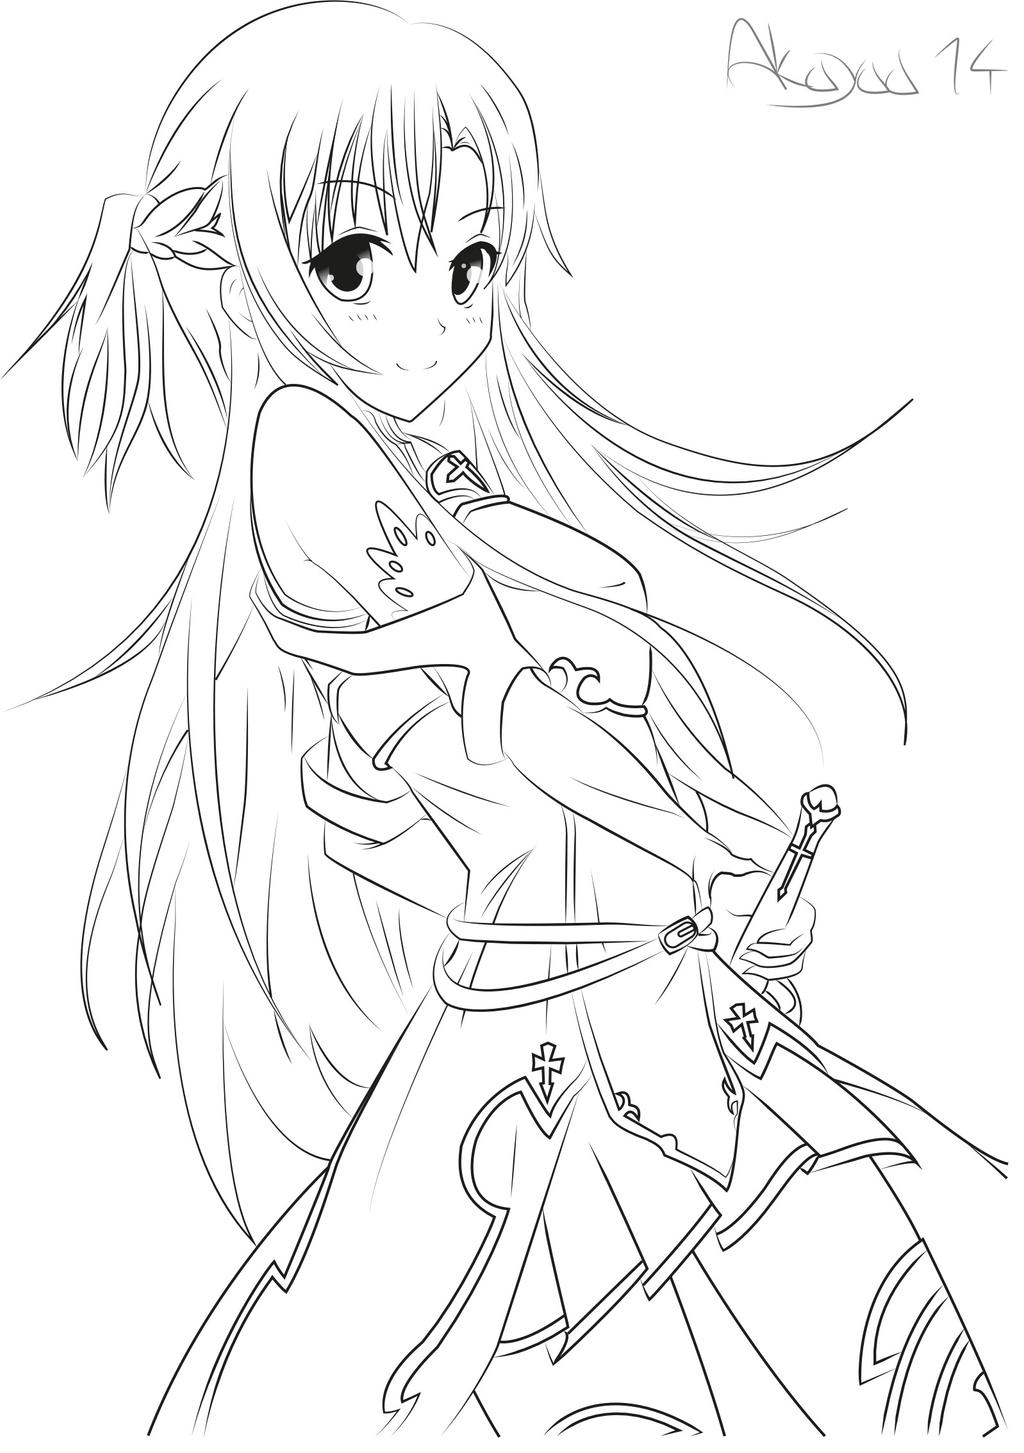 anime coloring pages | Asuna Yuuki / Sword Art Online [LineArt] by Akayaa on ...